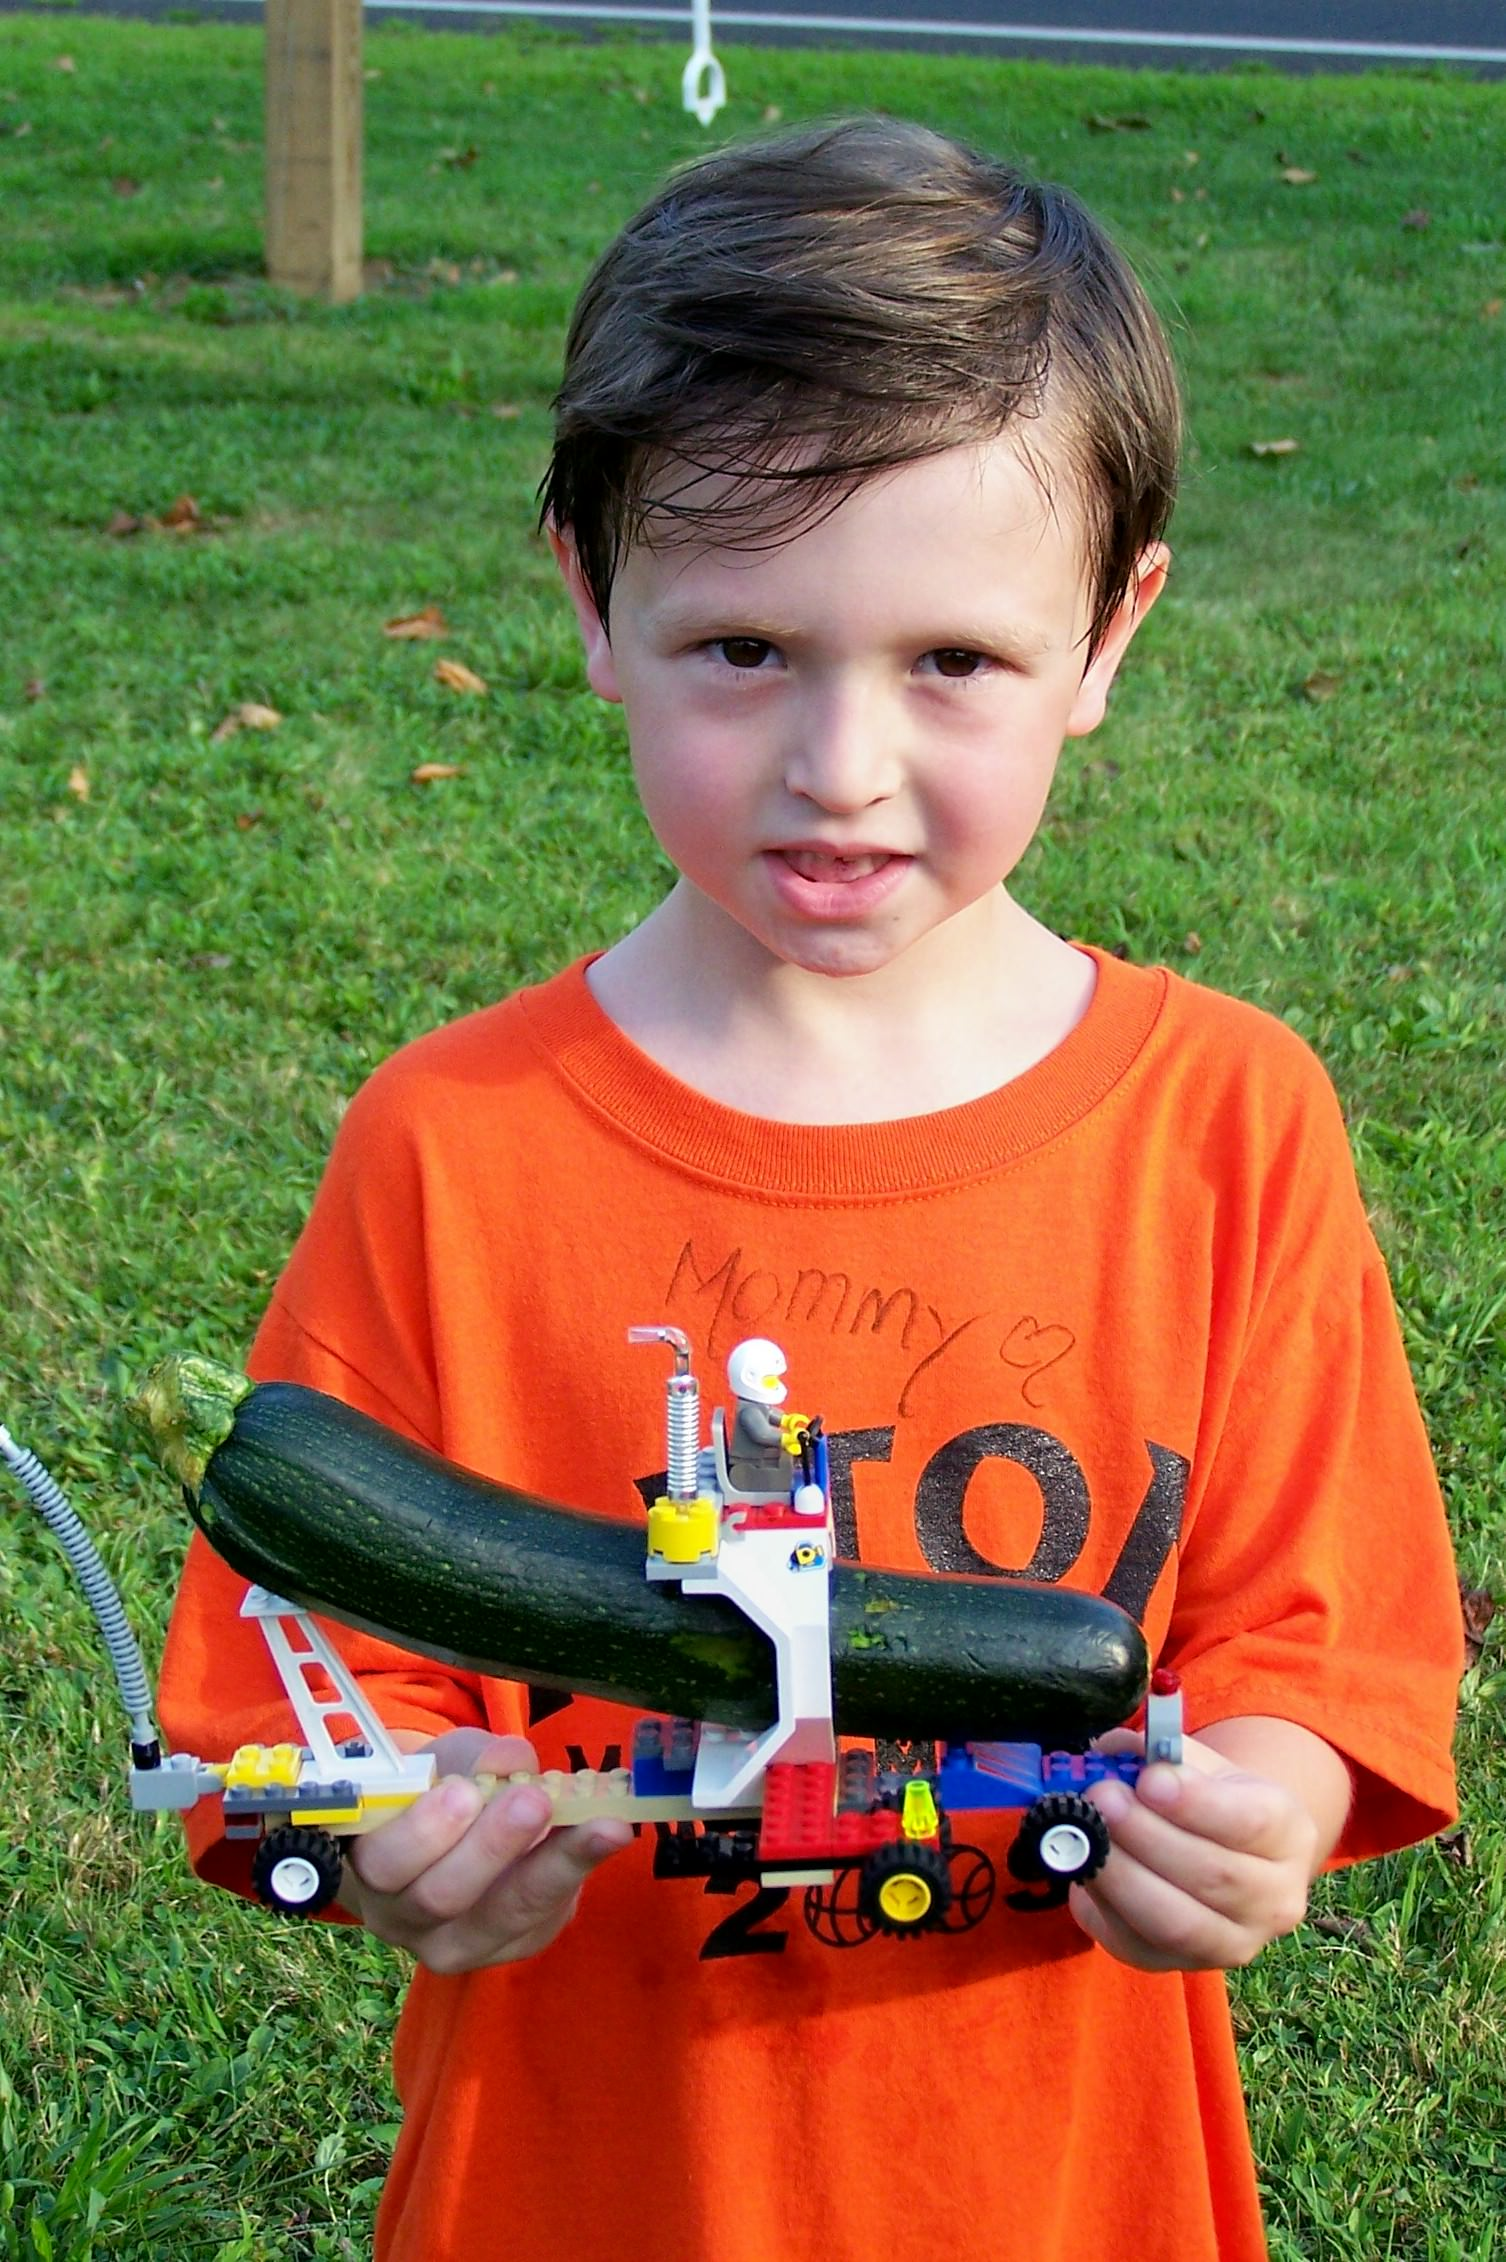 Cooper Corrigan with his zucchini racer